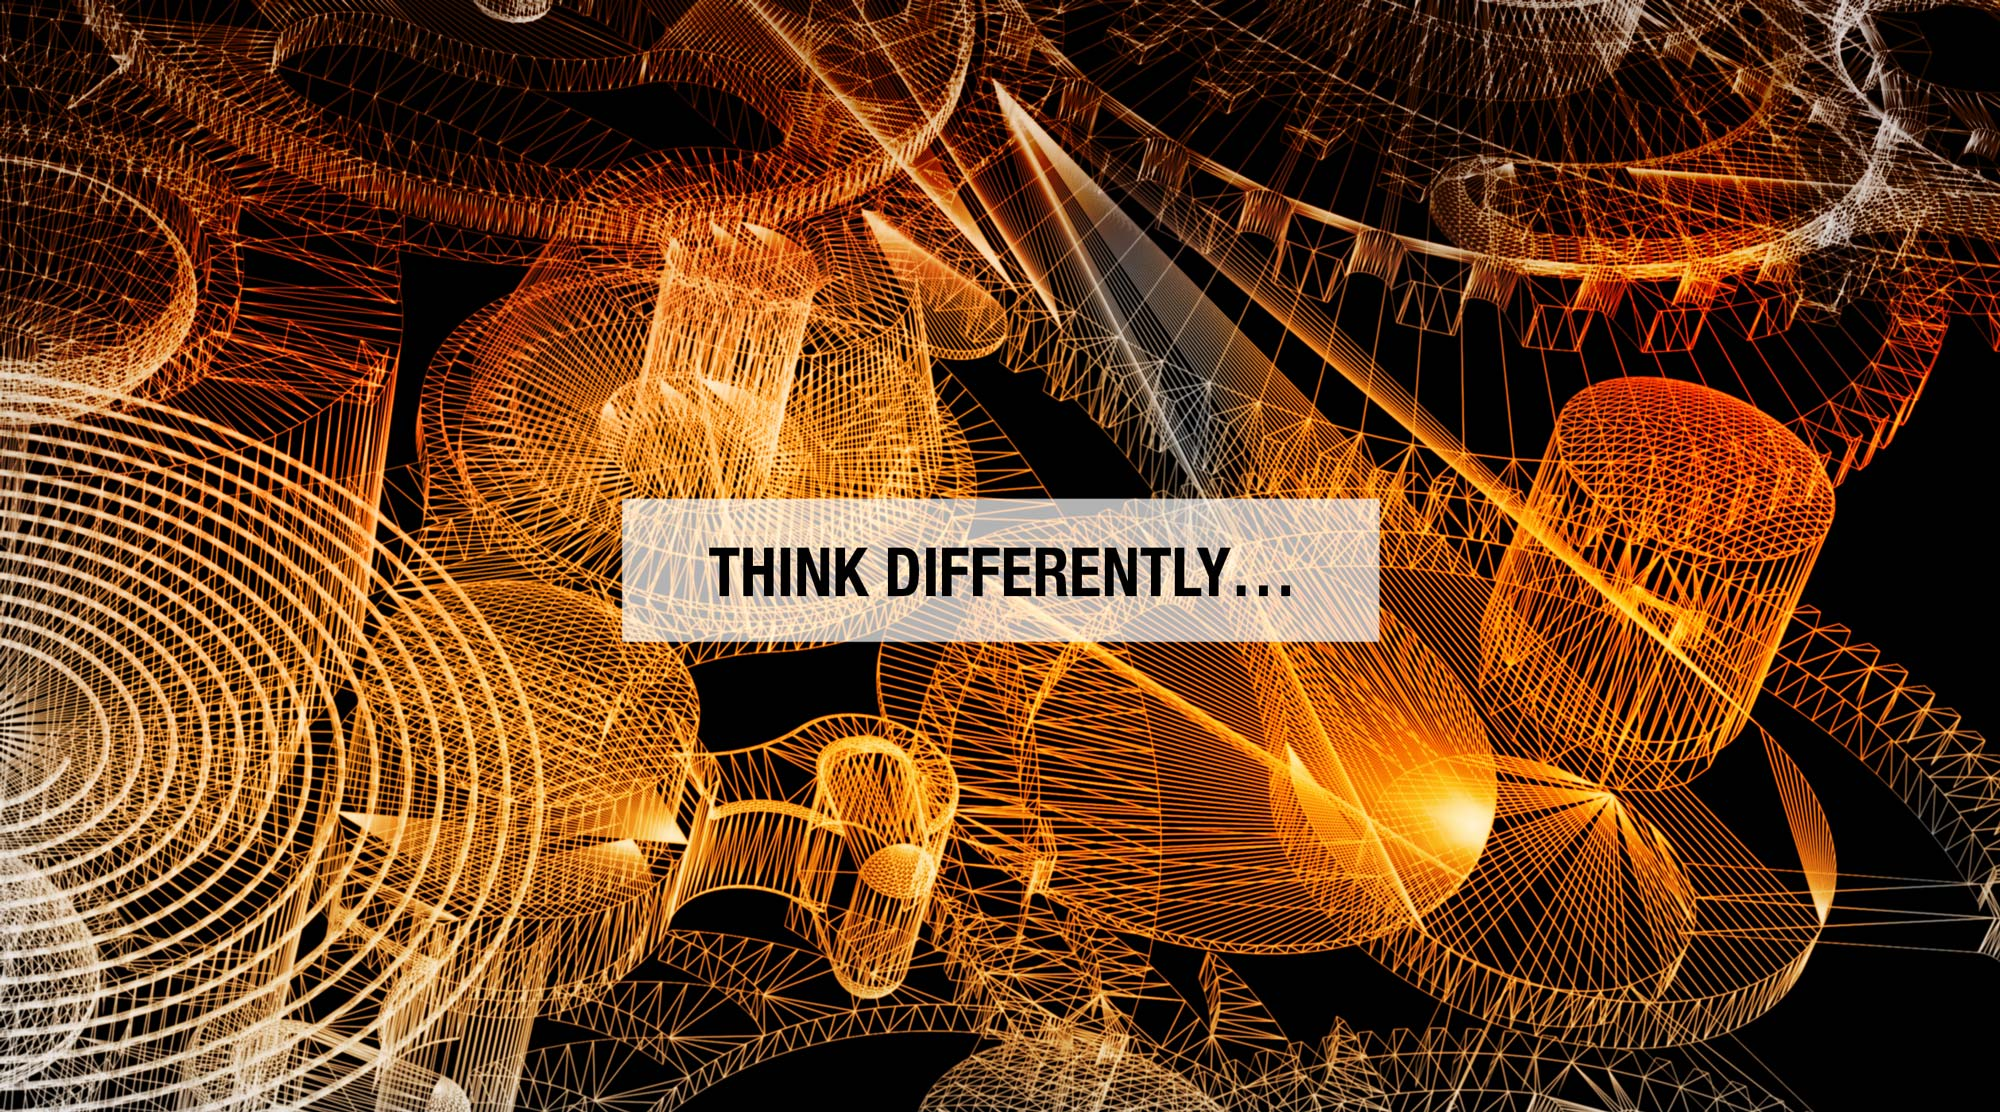 thing-differently